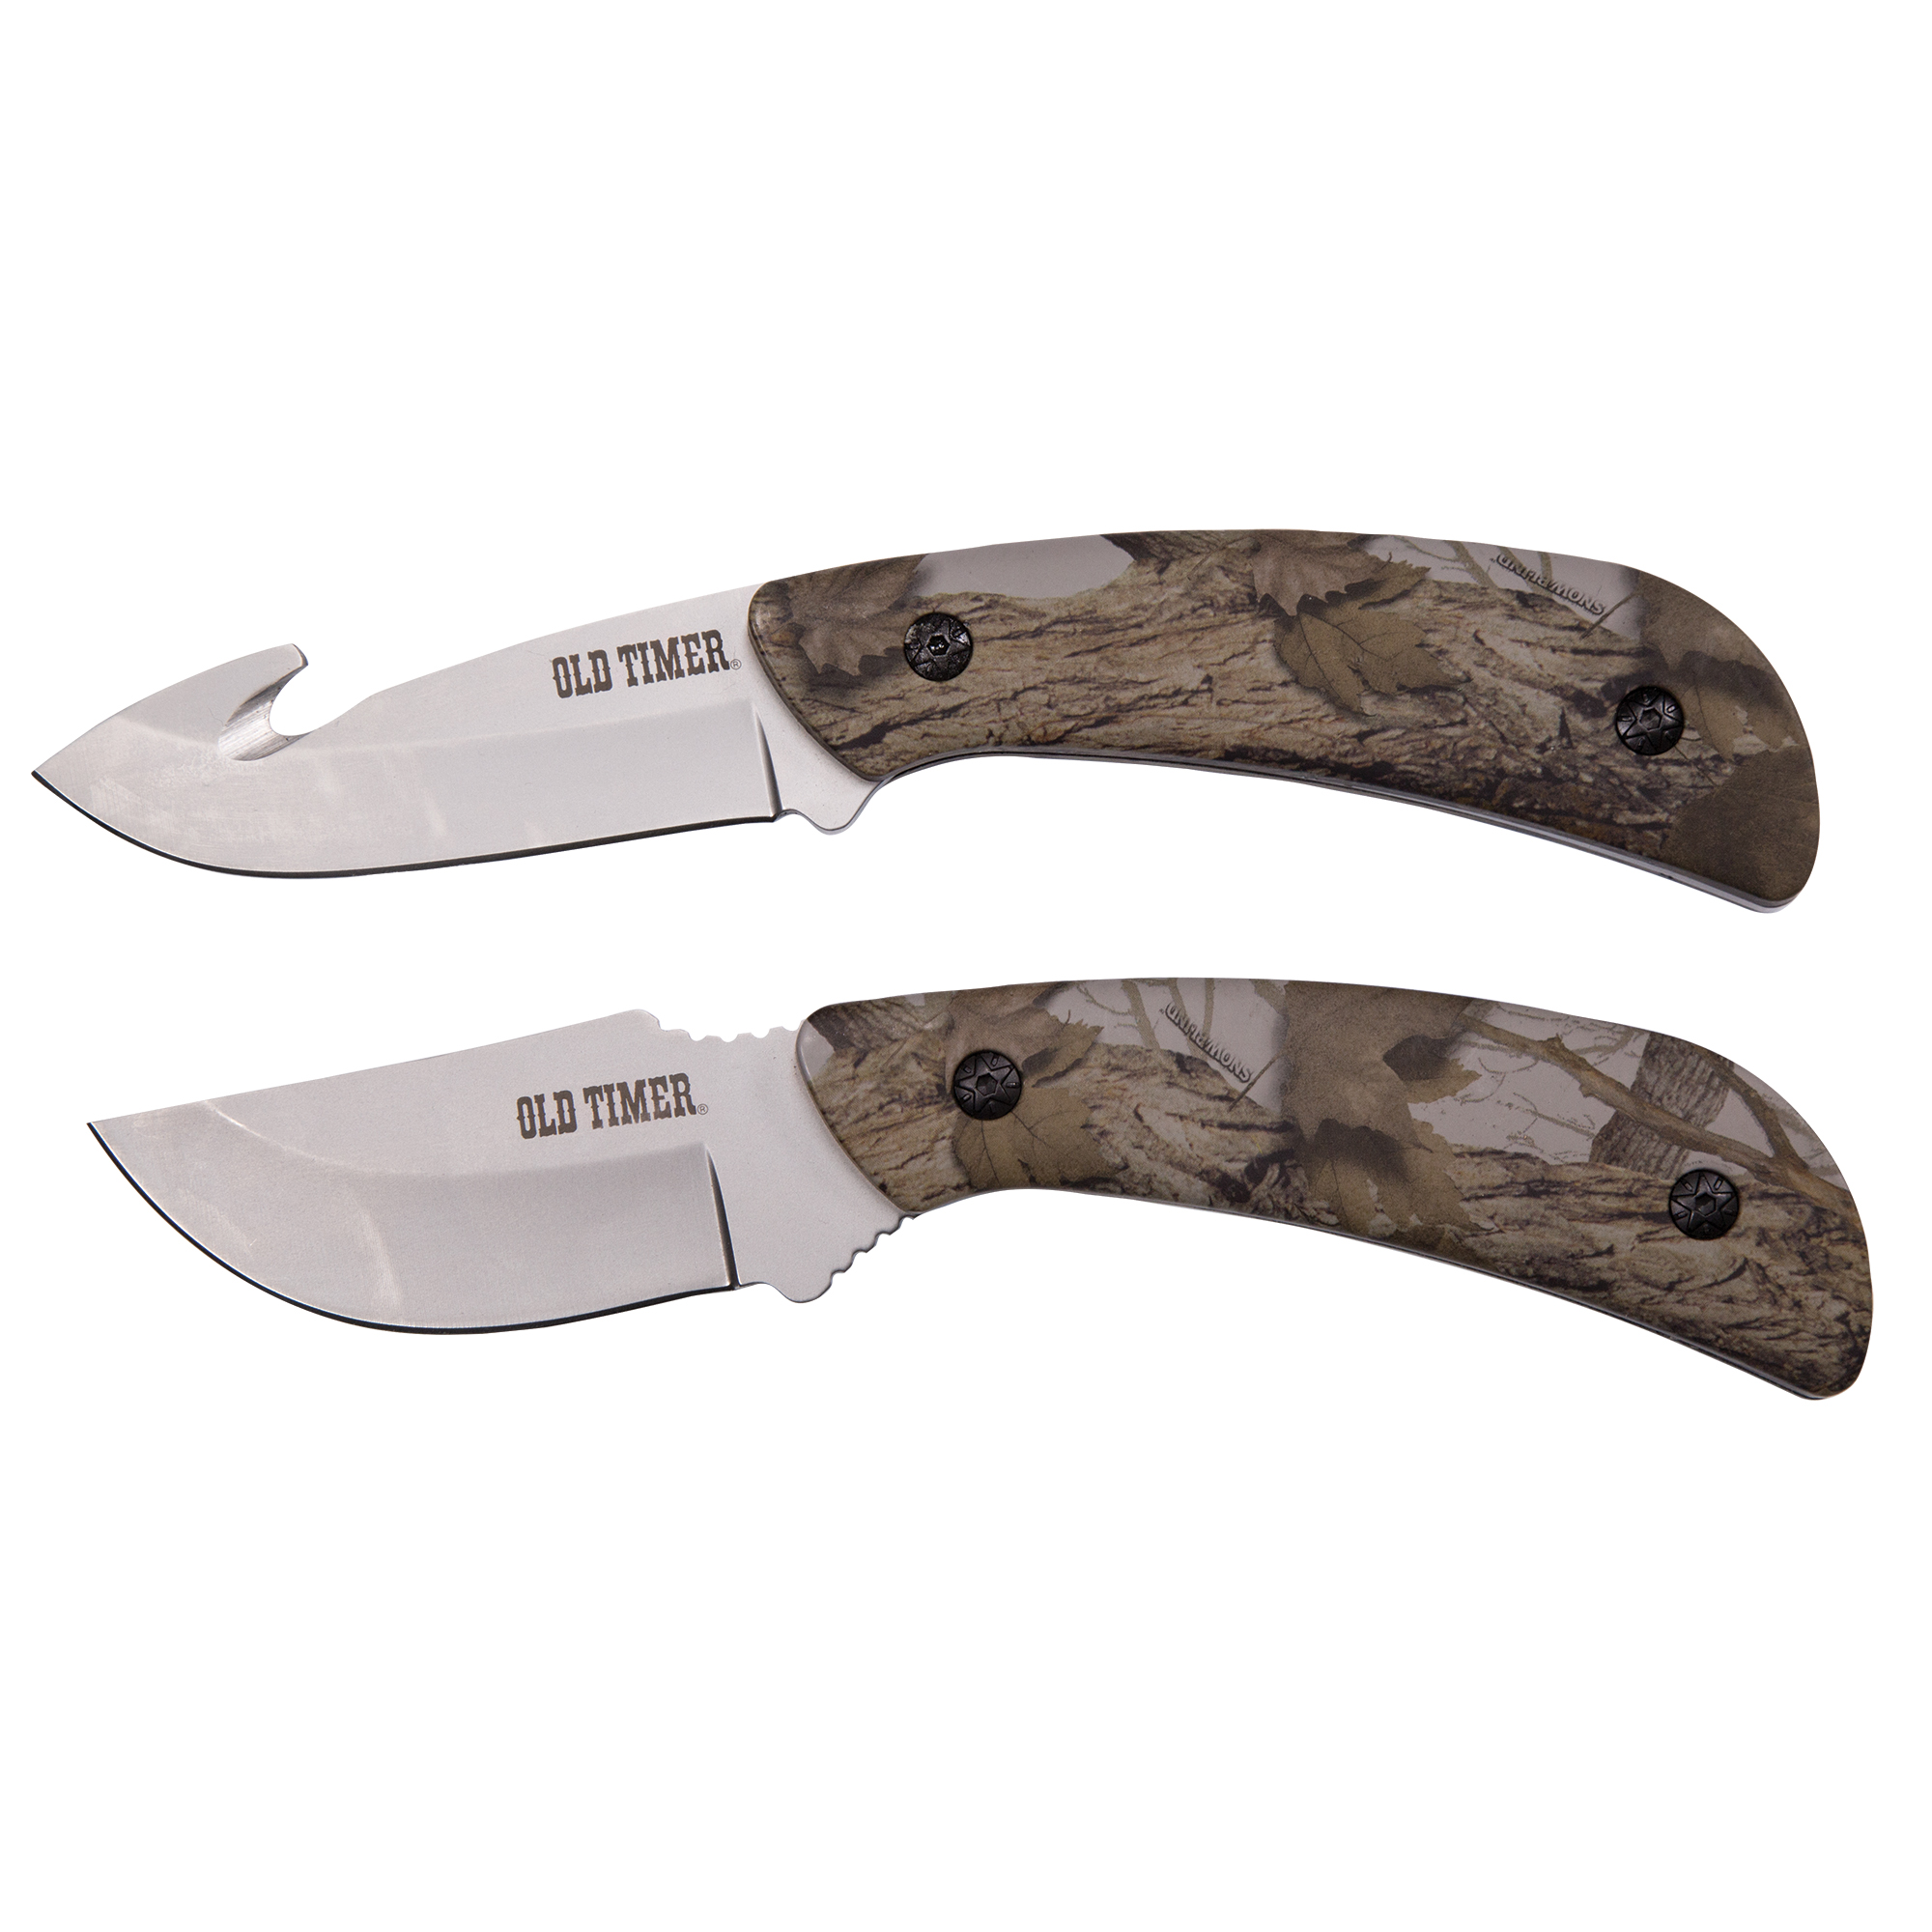 Old Timer Snowblind Fixed Knife 2-Pack